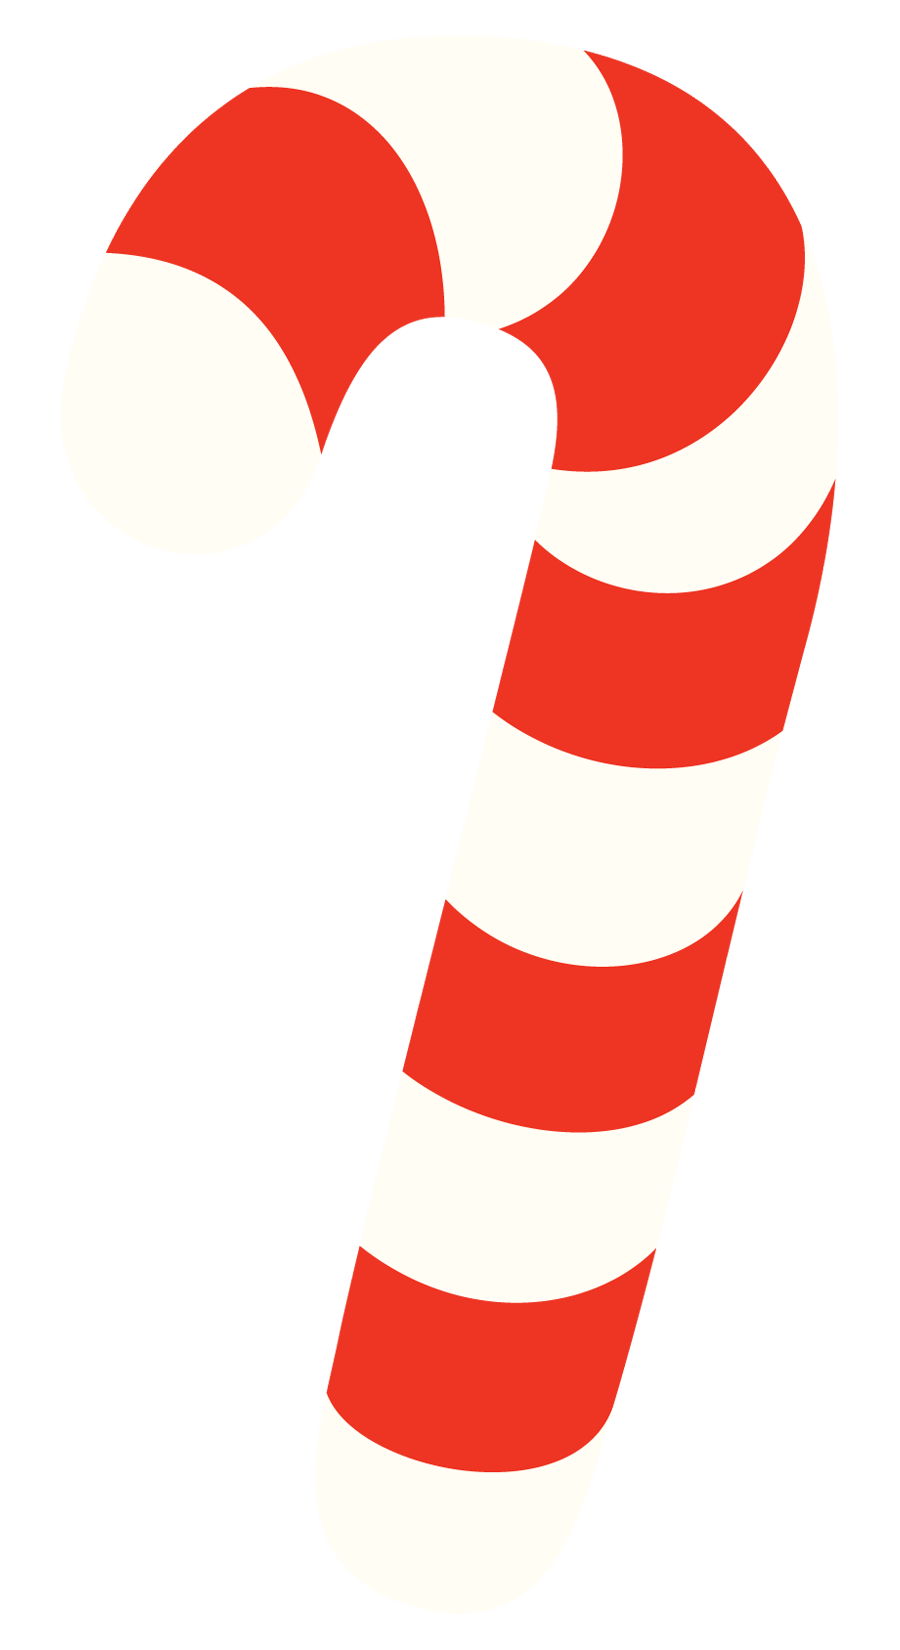 Cane free to use. Cute clipart candy